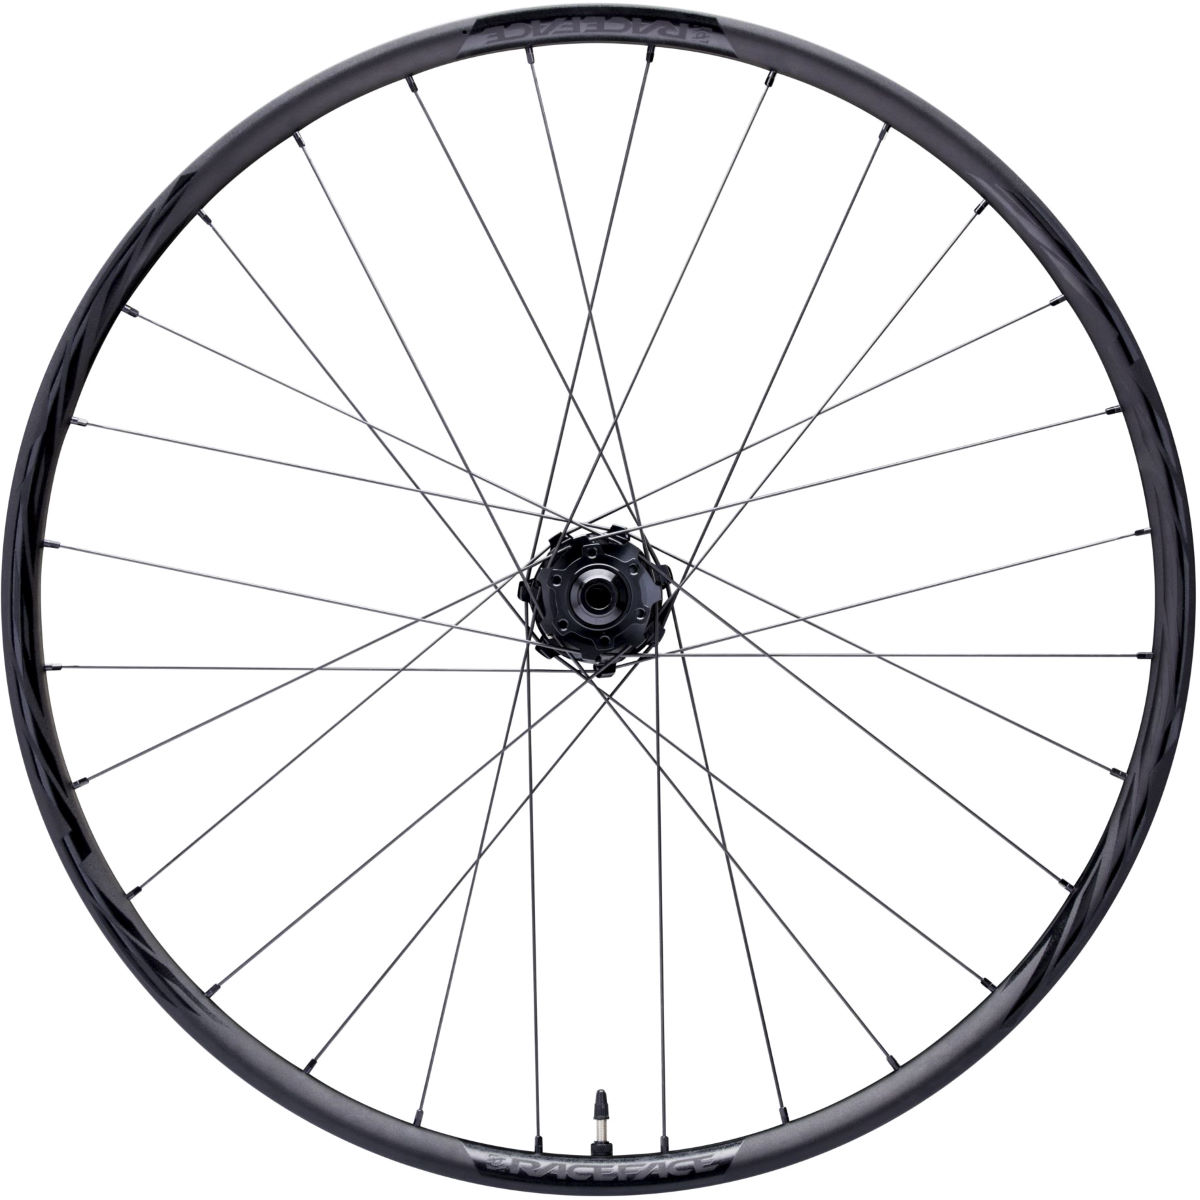 Roue avant VTT Race Face Turbine R - 29'' 15 x 100mm